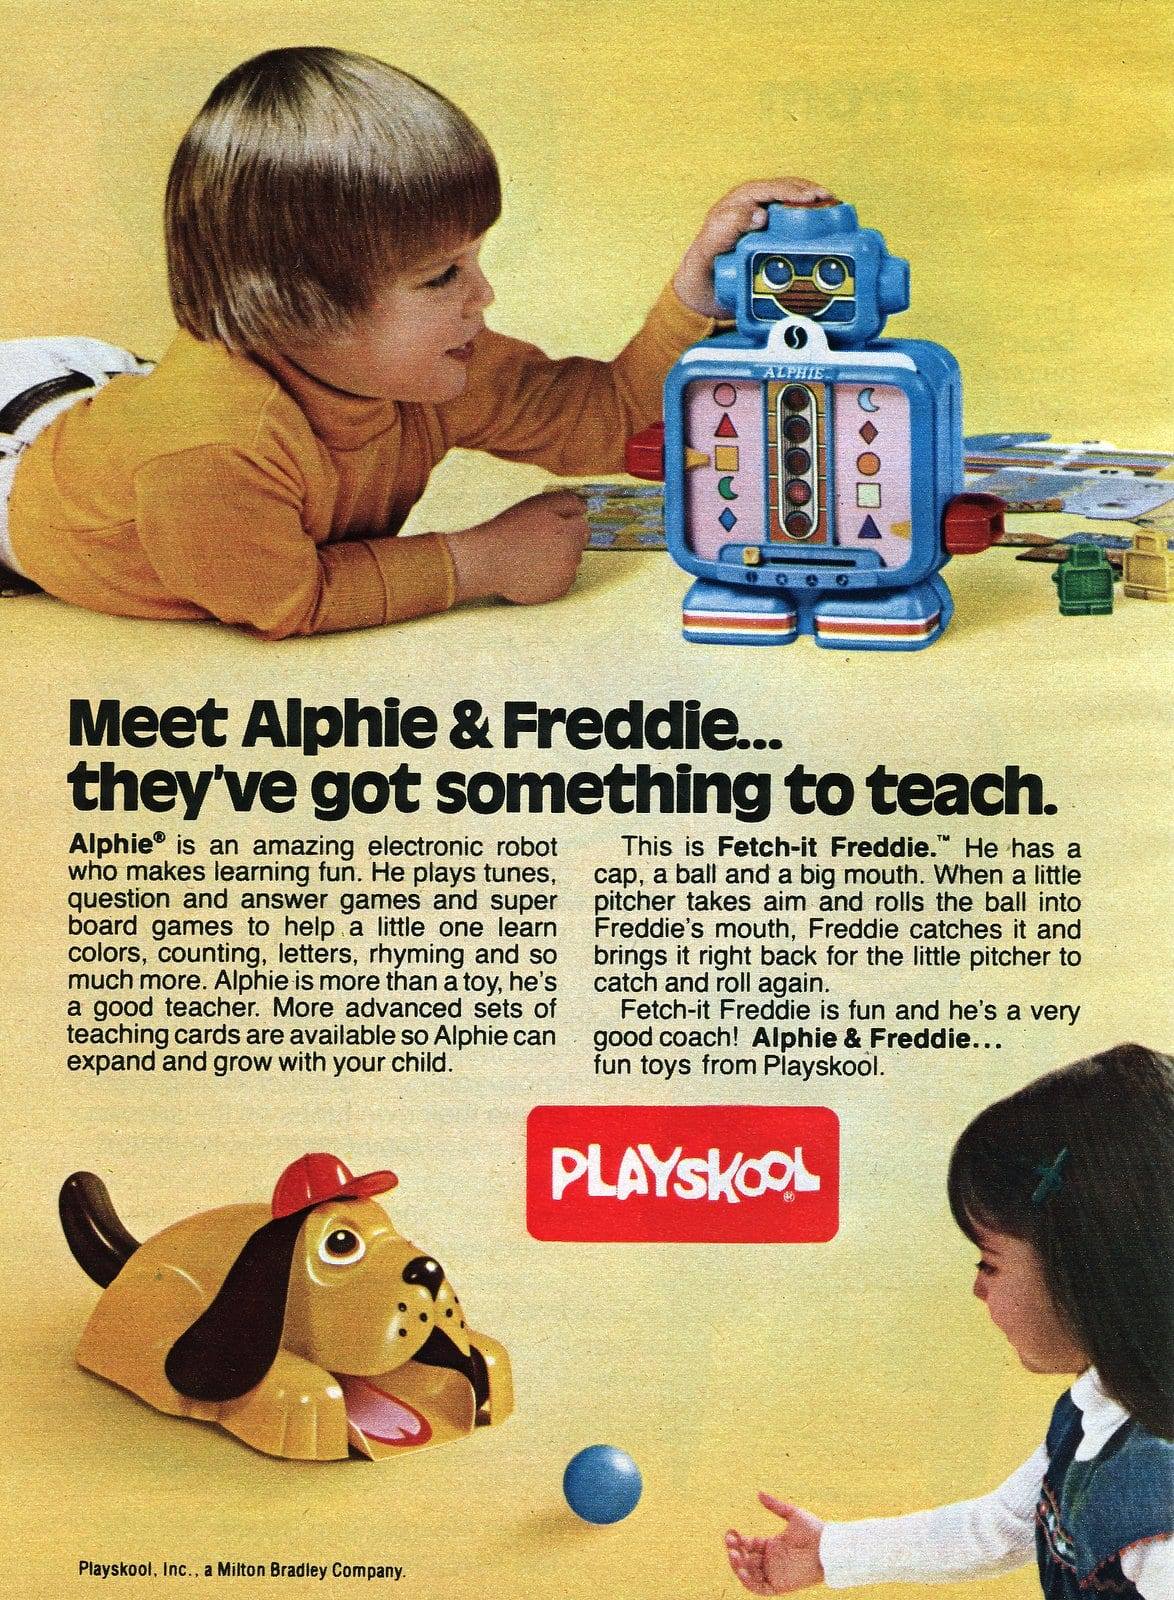 Playskool's Alphie and Freddie vintage toys (1979)